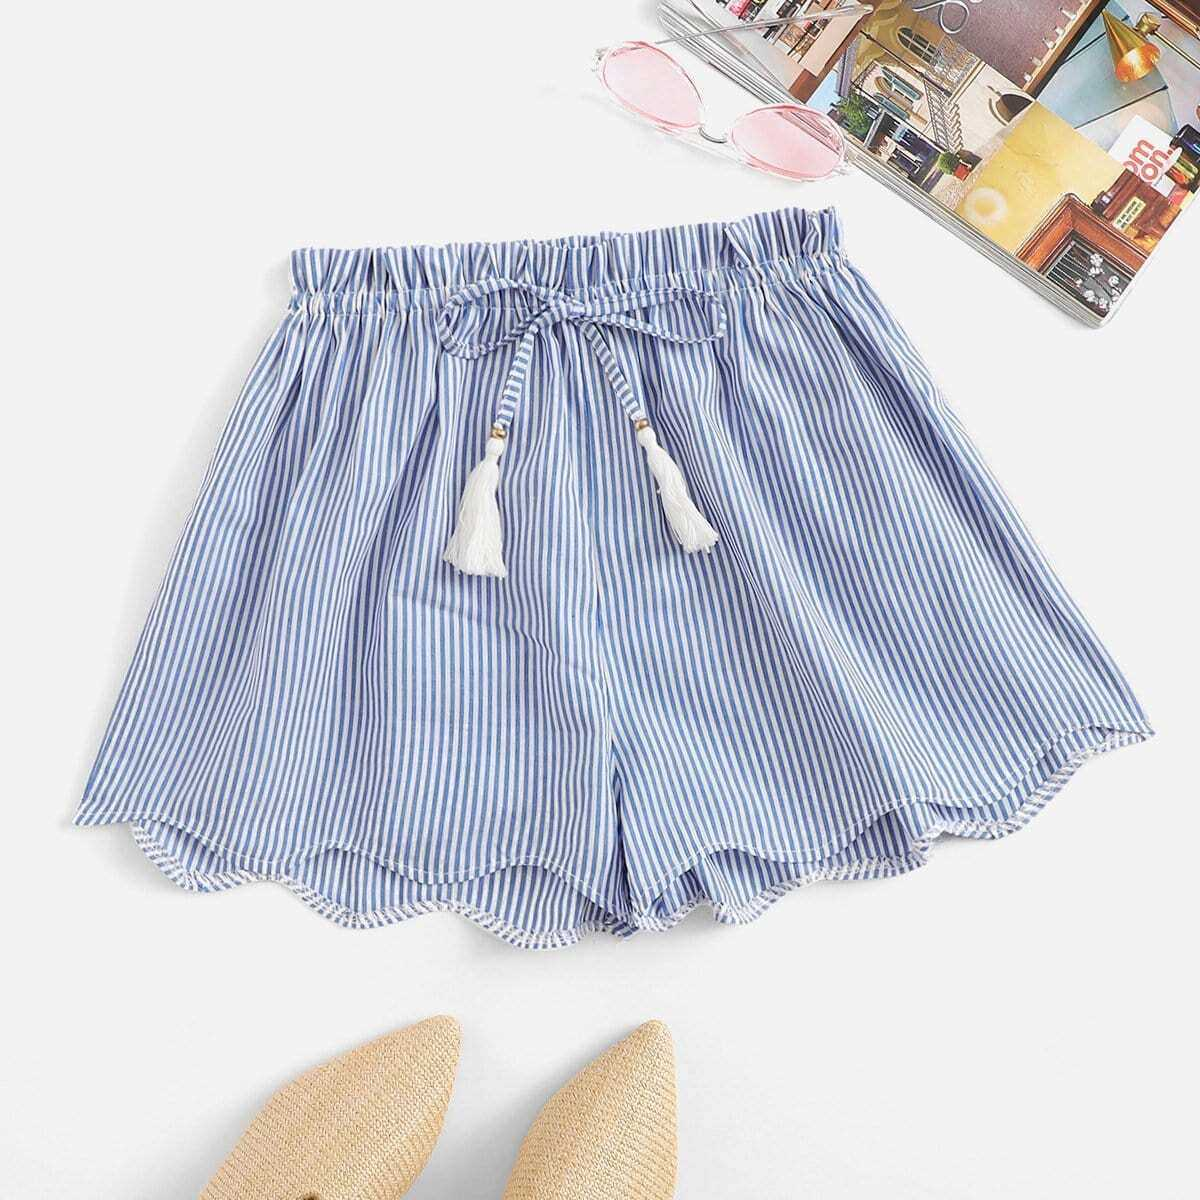 Striped Drawstring Waist Wave Edge Shorts in Blue by ROMWE on GOOFASH